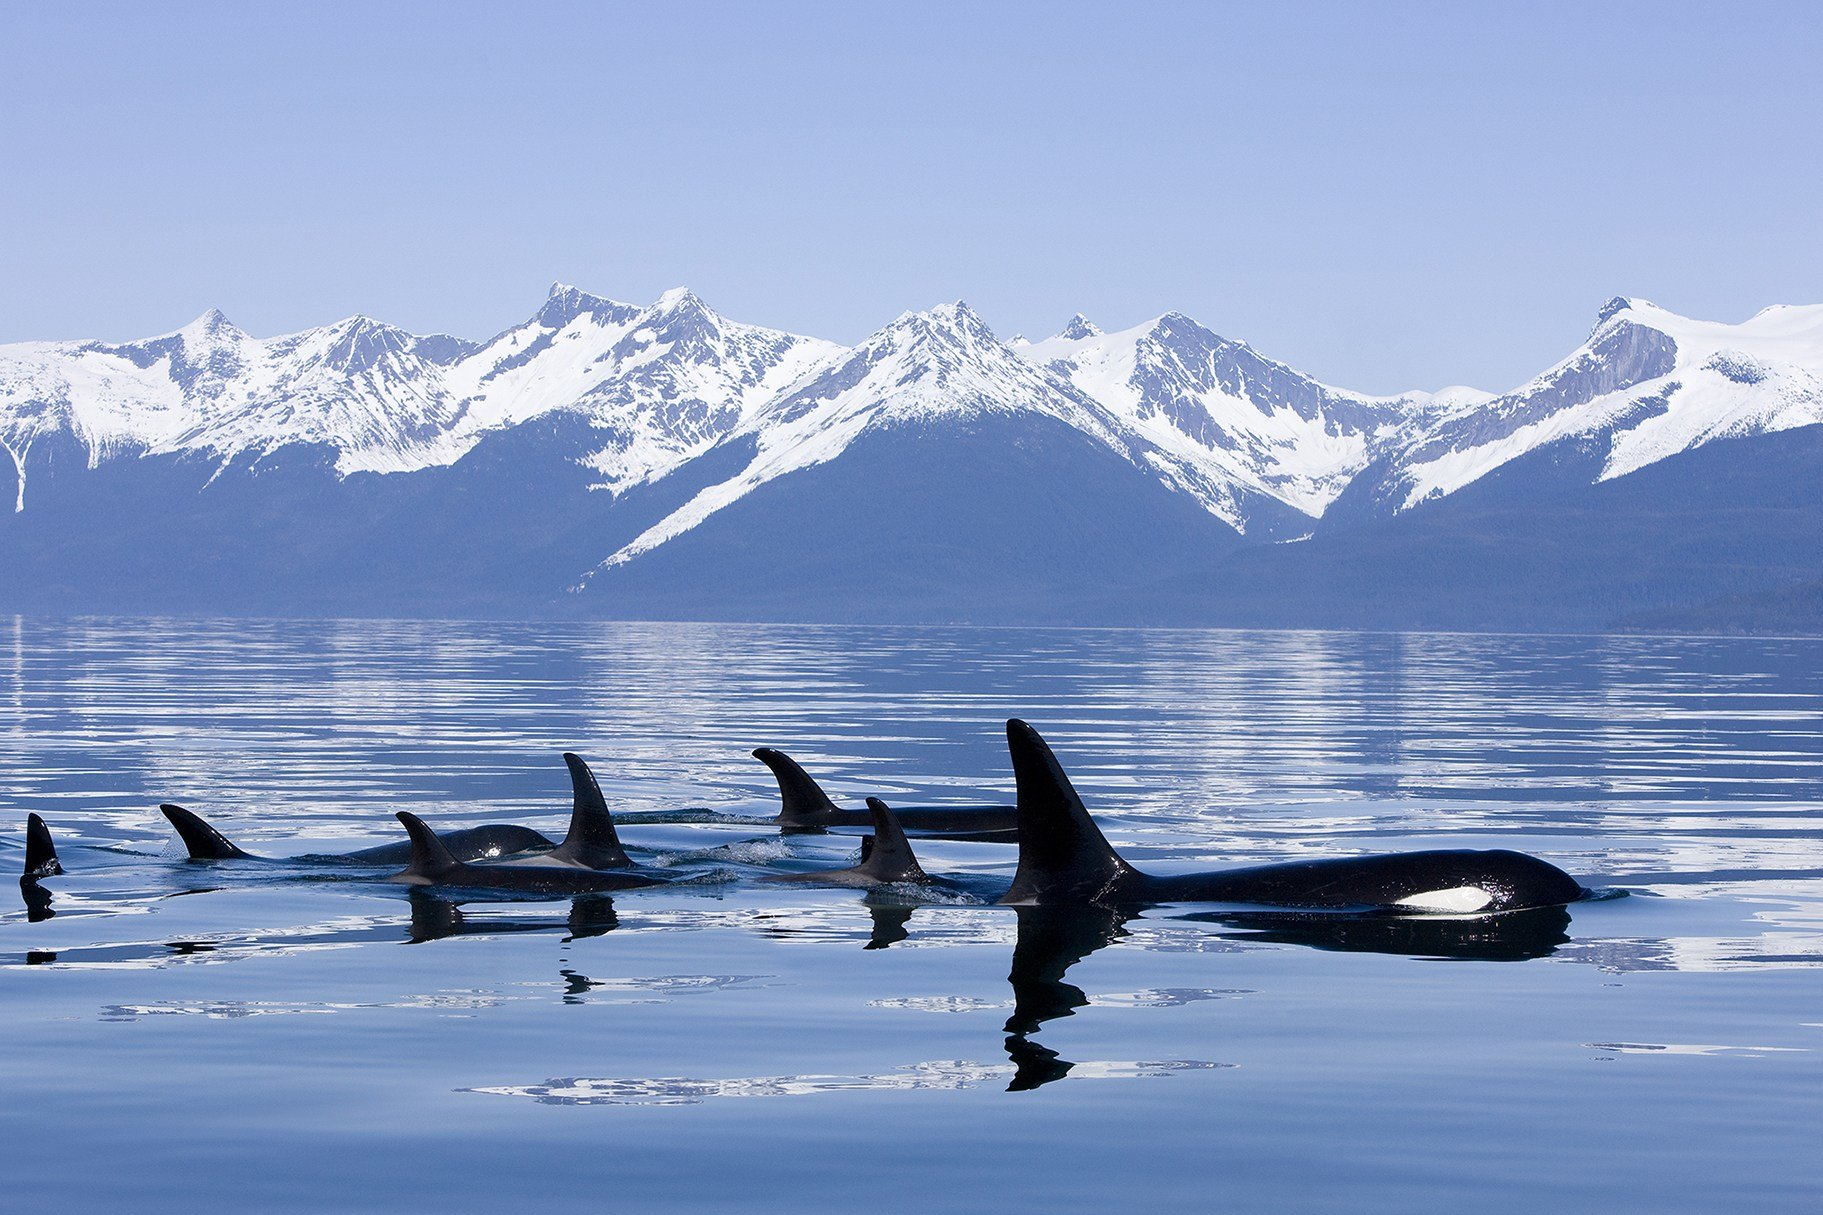 New The Best Of Alaska By Boat Top 10 Alaska Cruise Tips On This Month